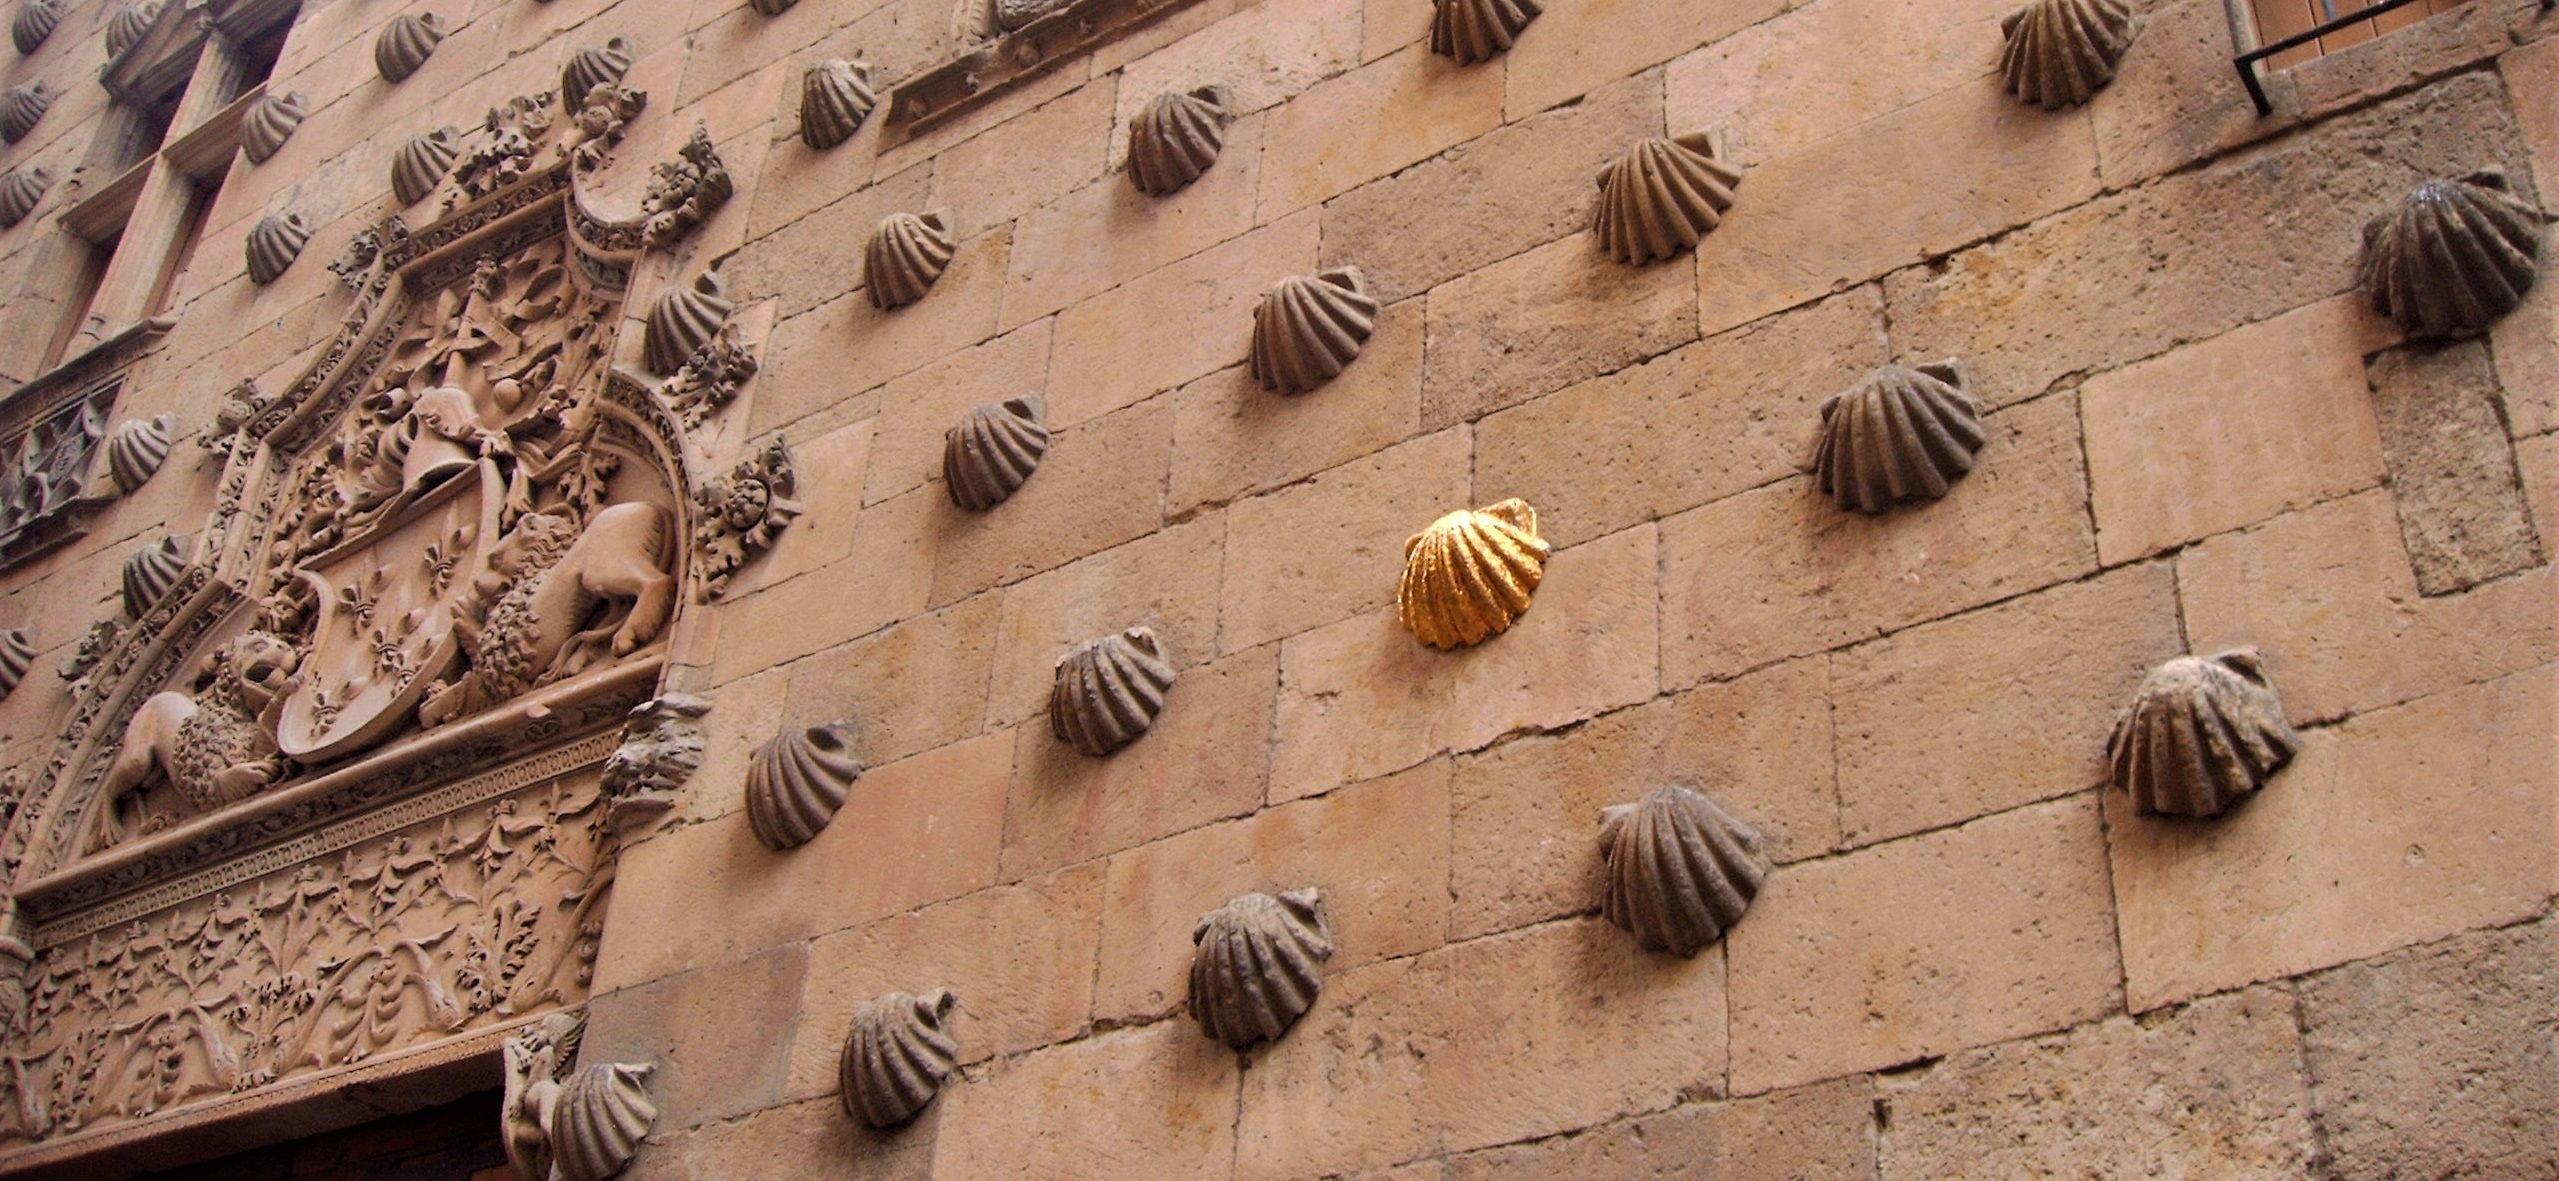 The House of Shells, Salamanca.